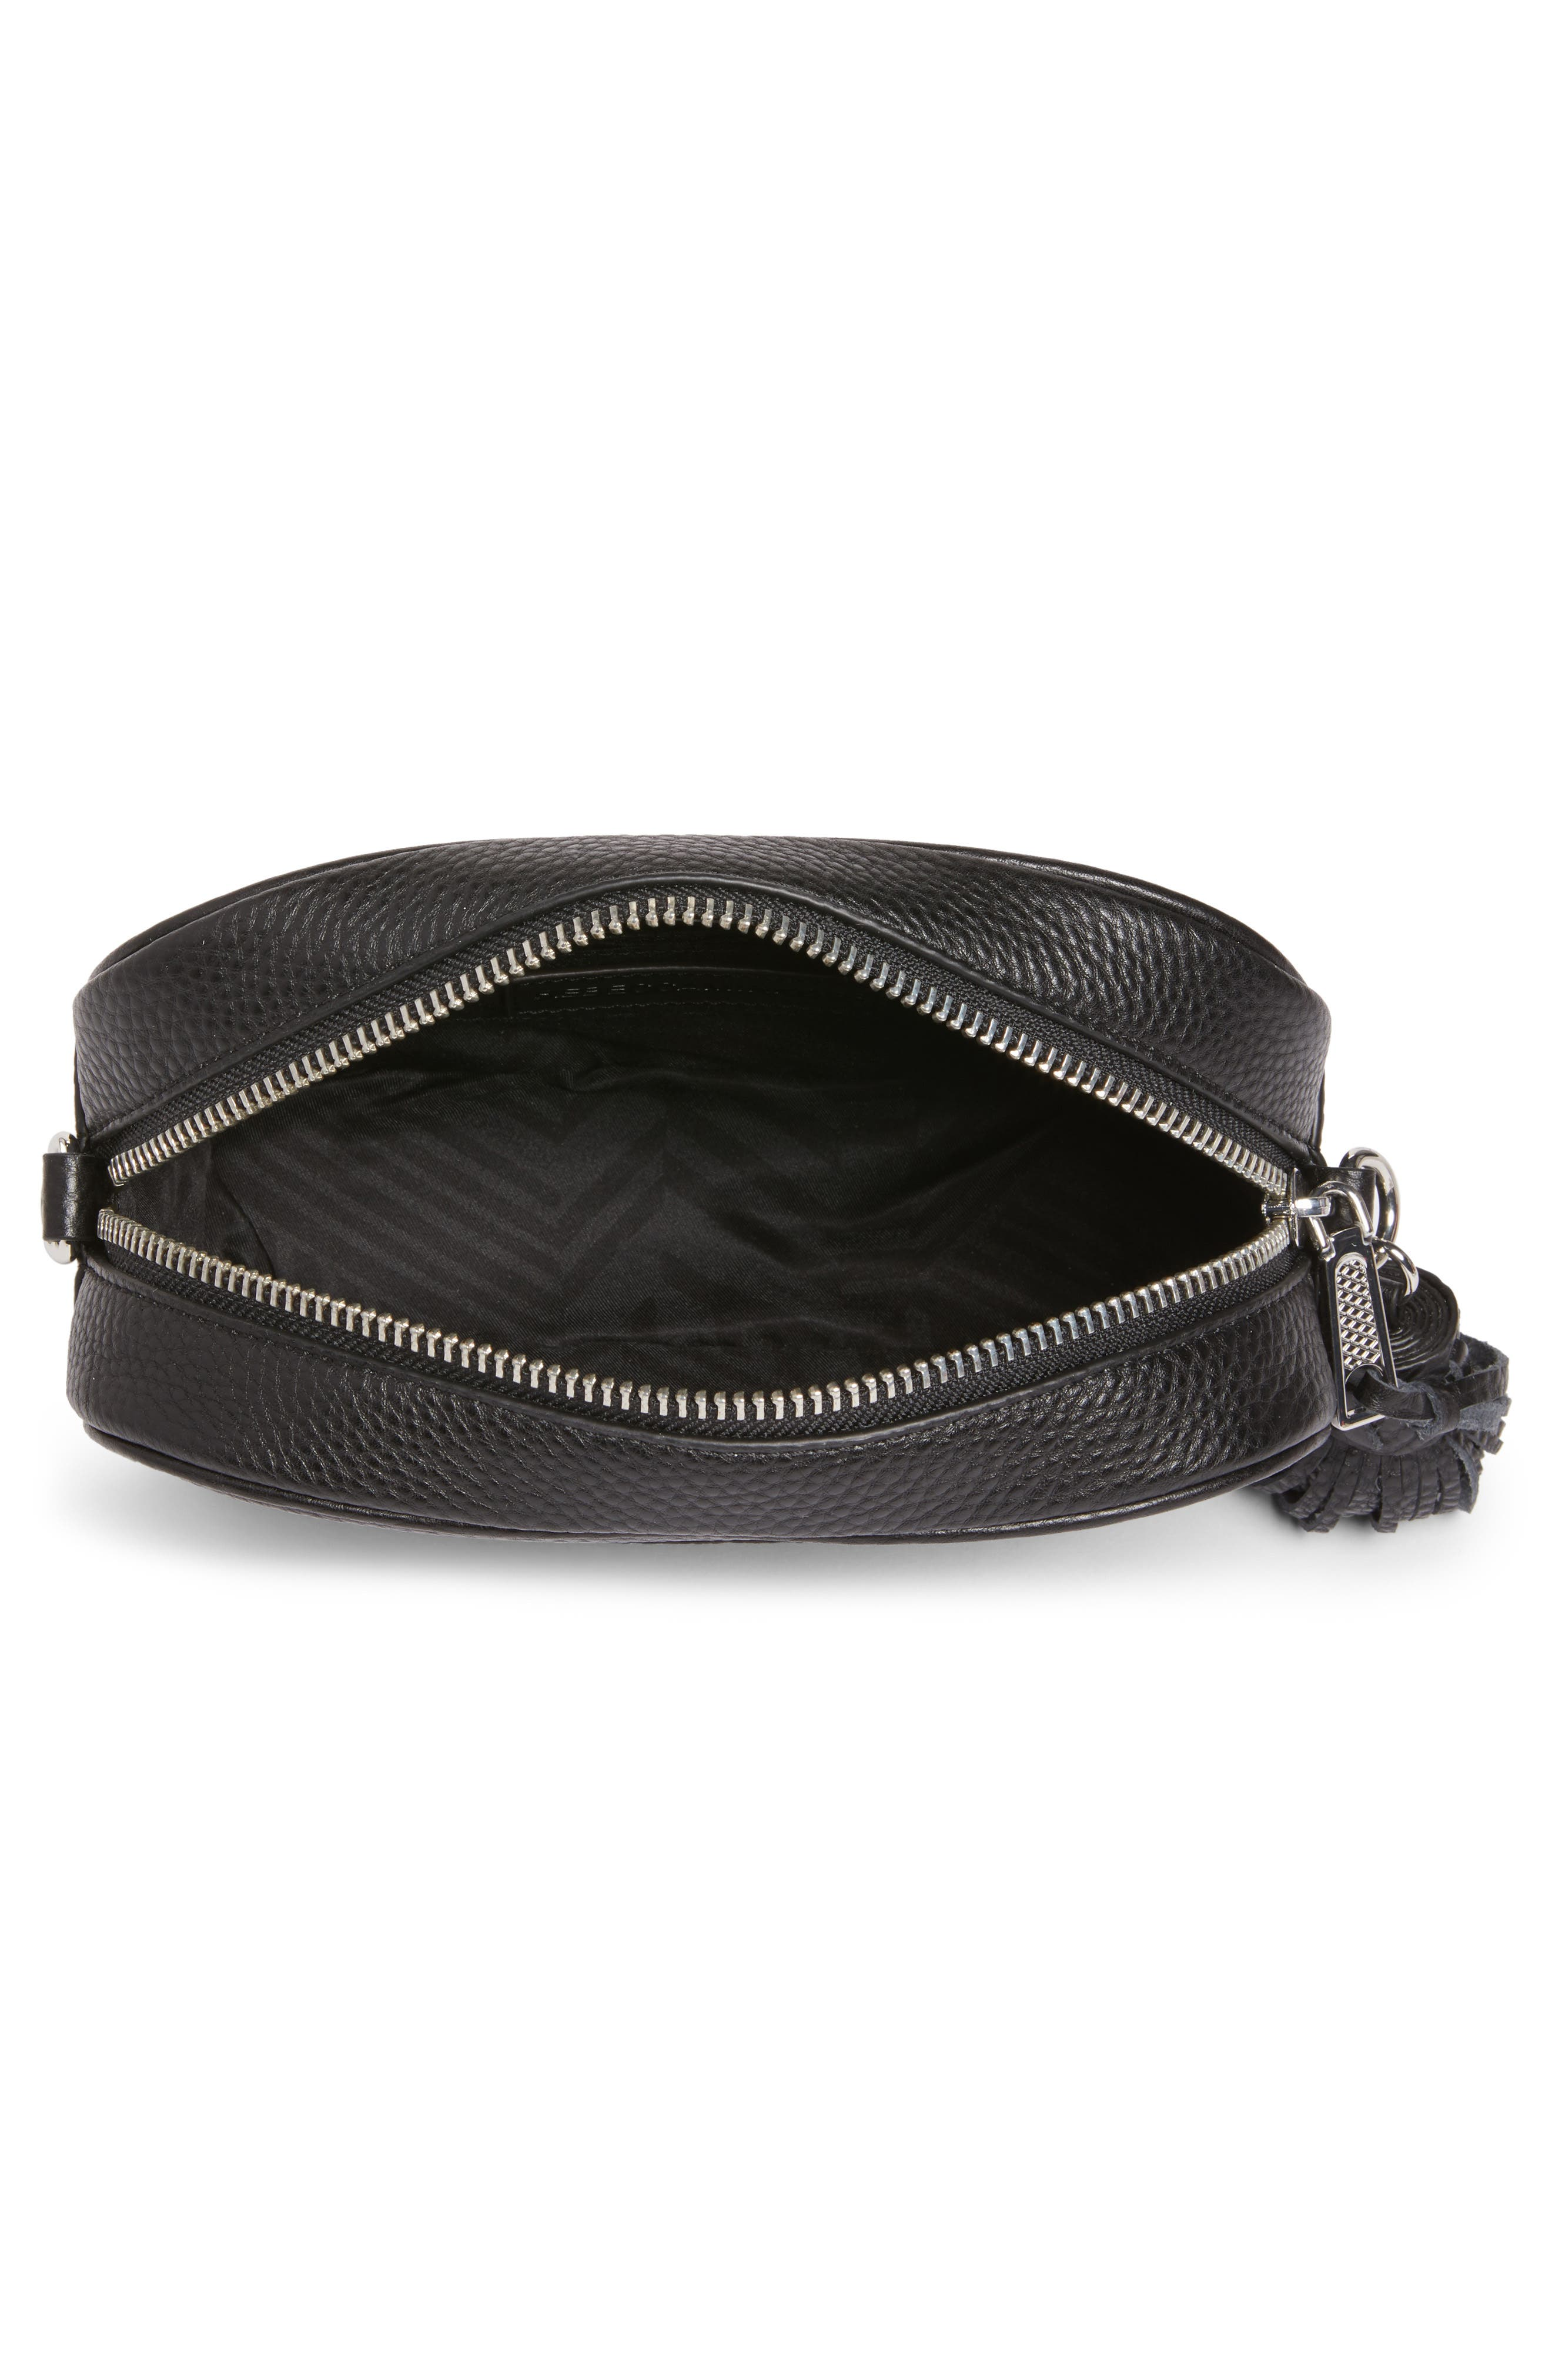 Leather Camera Bag with Guitar Strap,                             Alternate thumbnail 5, color,                             Black/ Silver Hardware